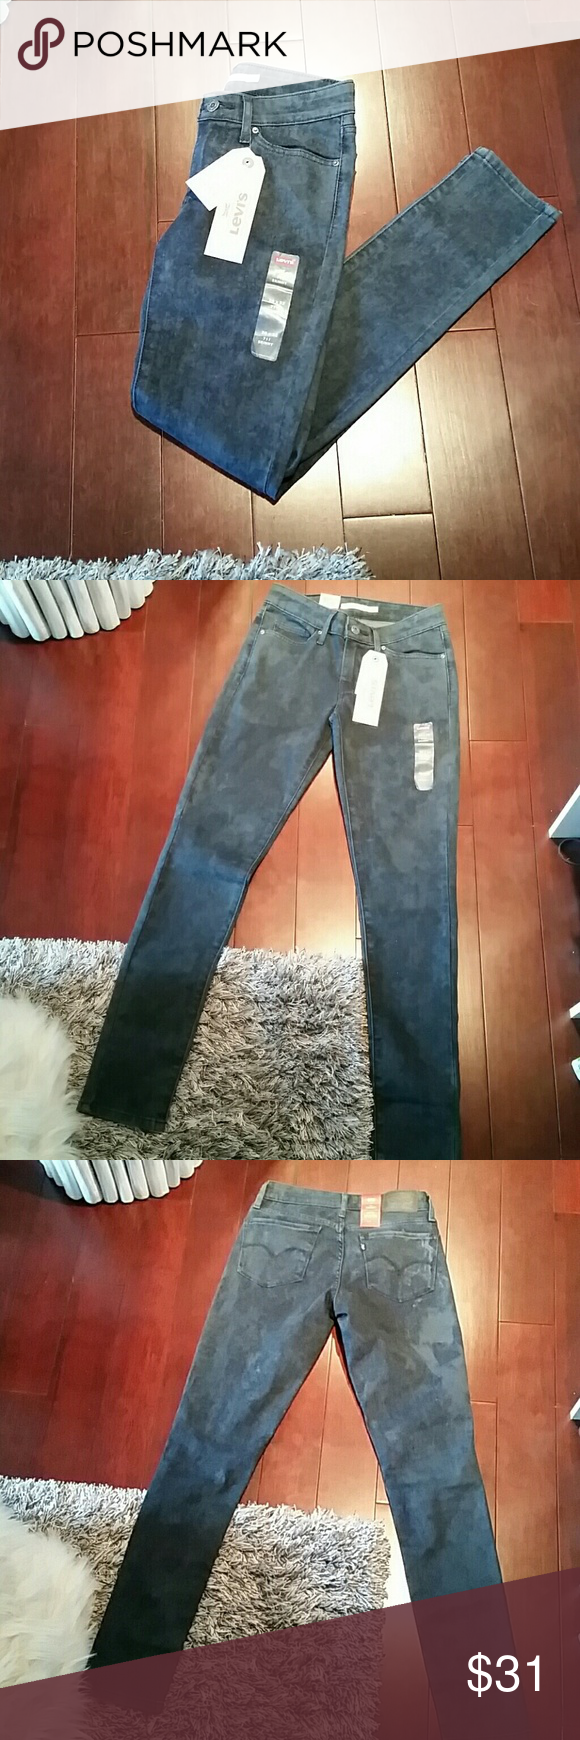 BNWT Levi 711 Skinny Jean SO cute! Love the retro look these have. Tags attached, never worn. Skinny leg. 711 jeans made by Levi definitely lift + are very slimming. Levi's Jeans Skinny